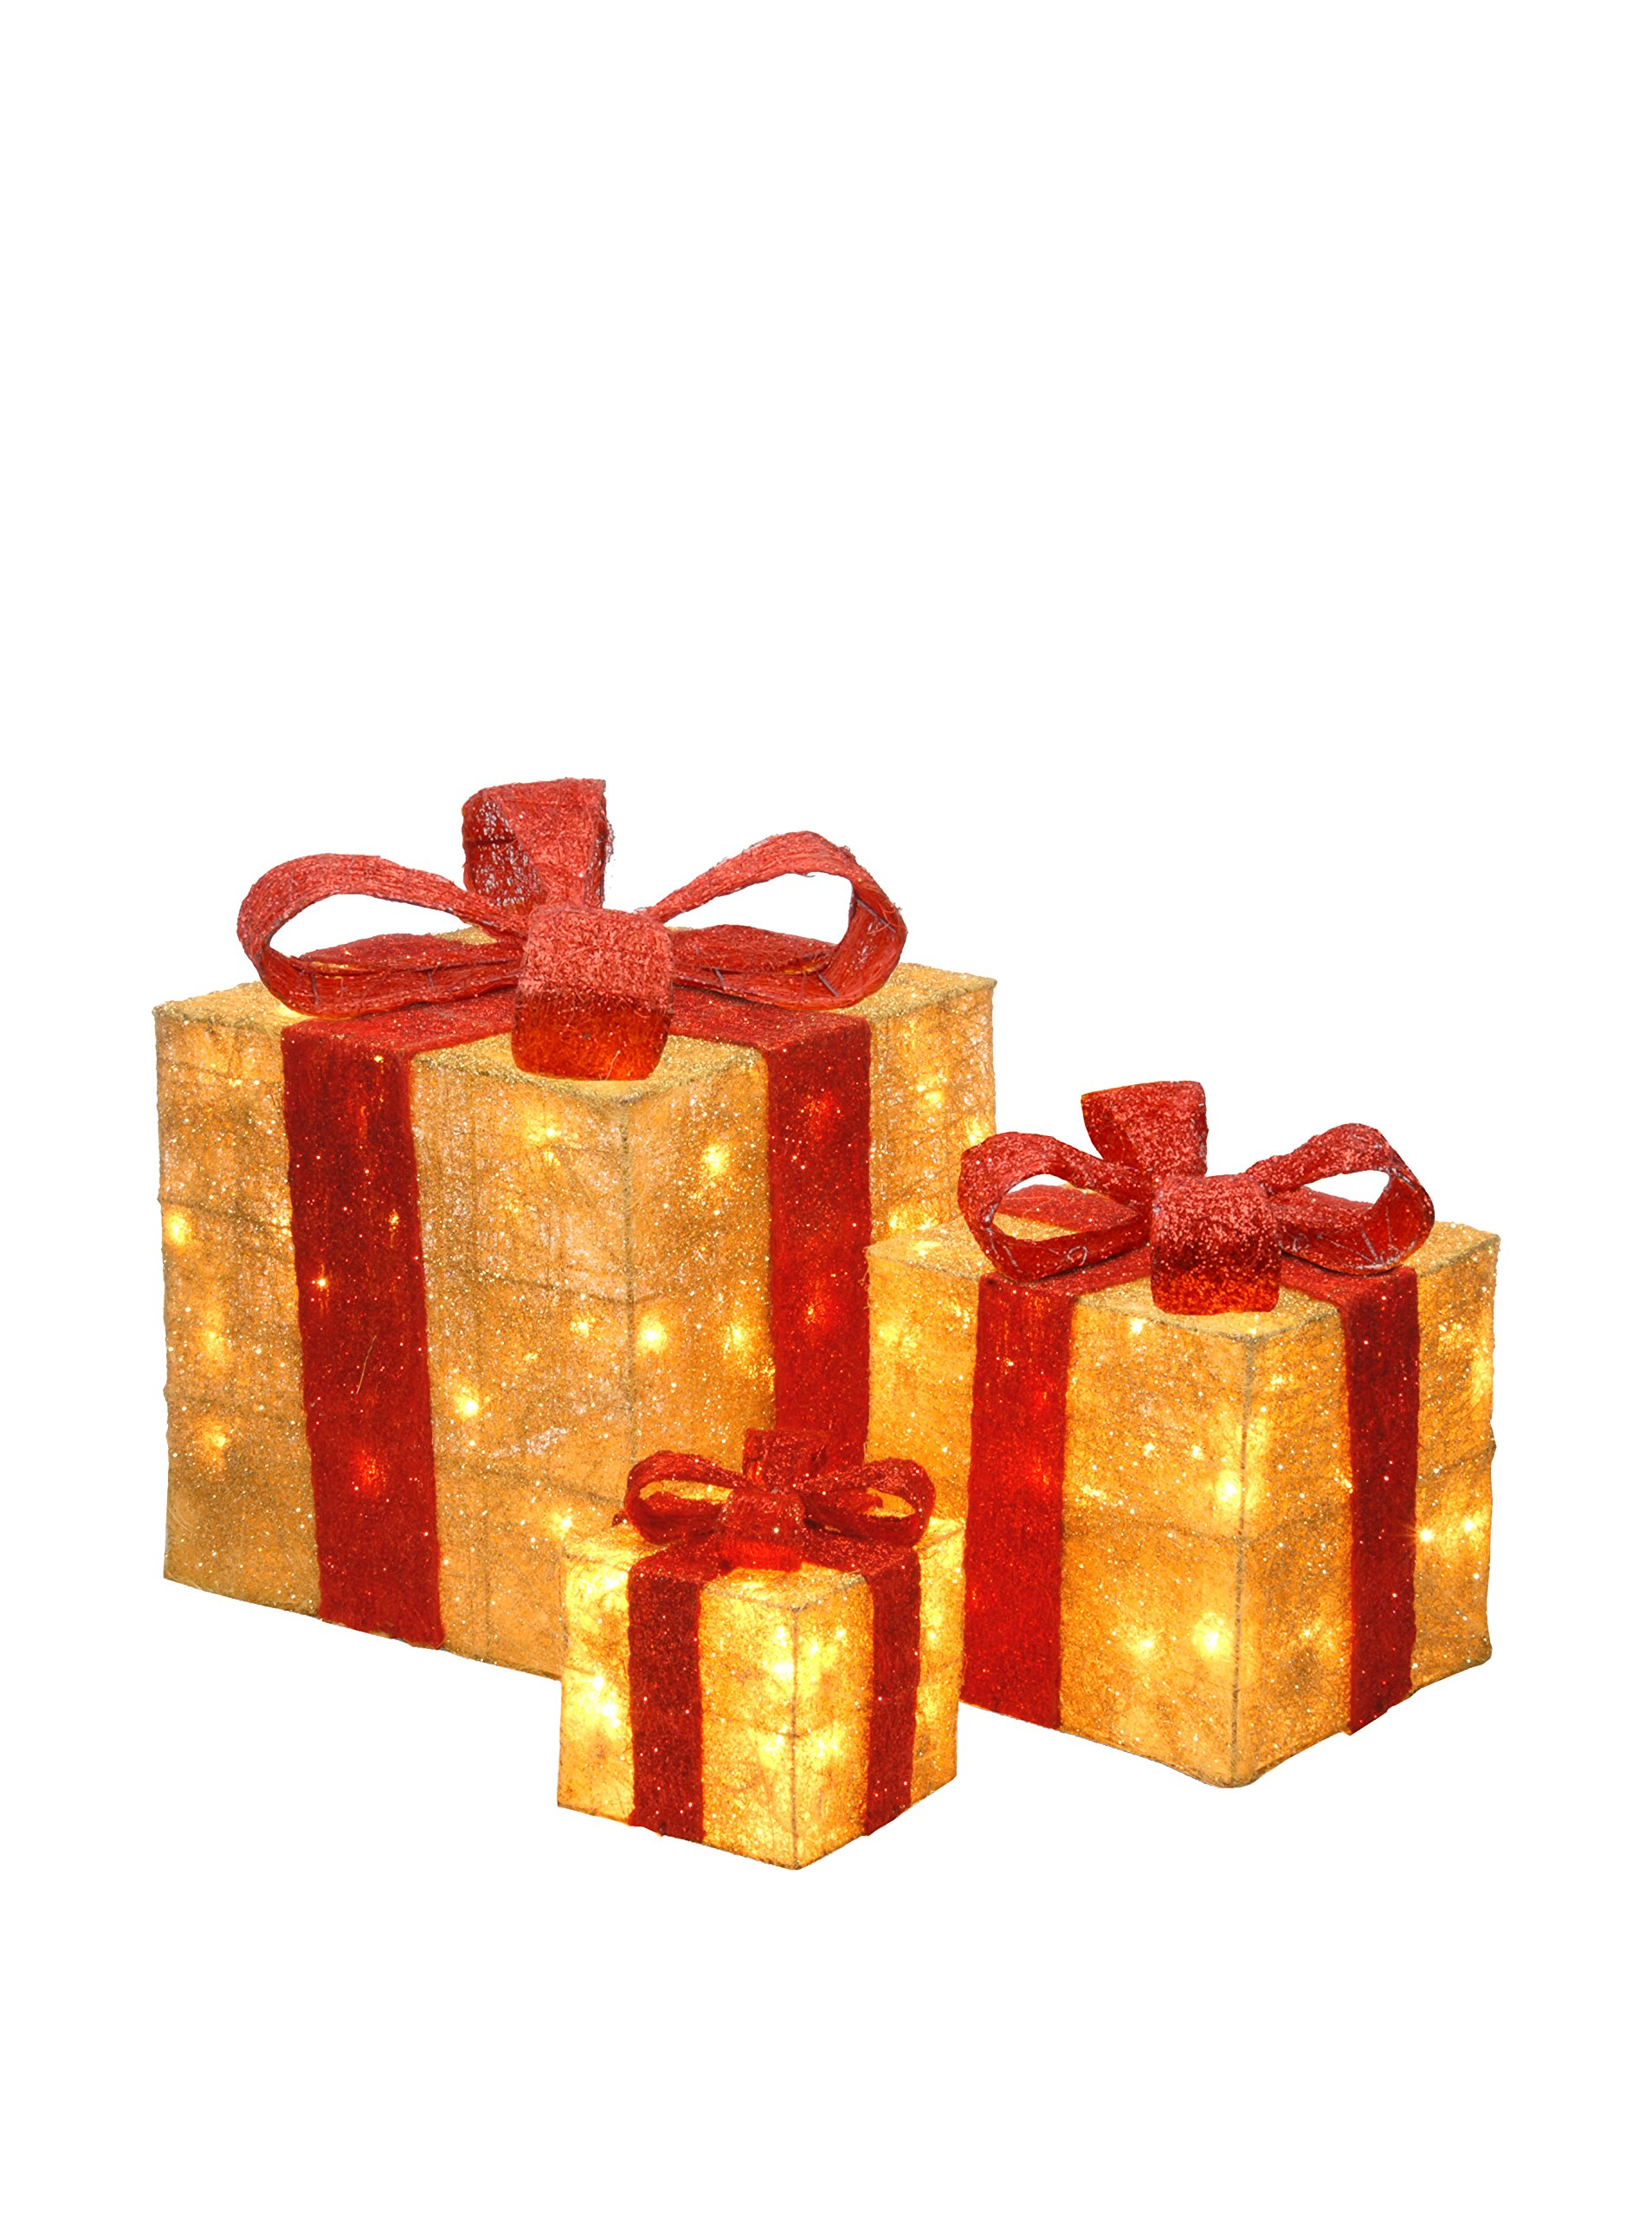 National Tree Set of 3 Assorted Gold Sisal Gift Boxes with Red Bow and Clear Lights (MZGB-ASST-13L-1) by National Tree Company